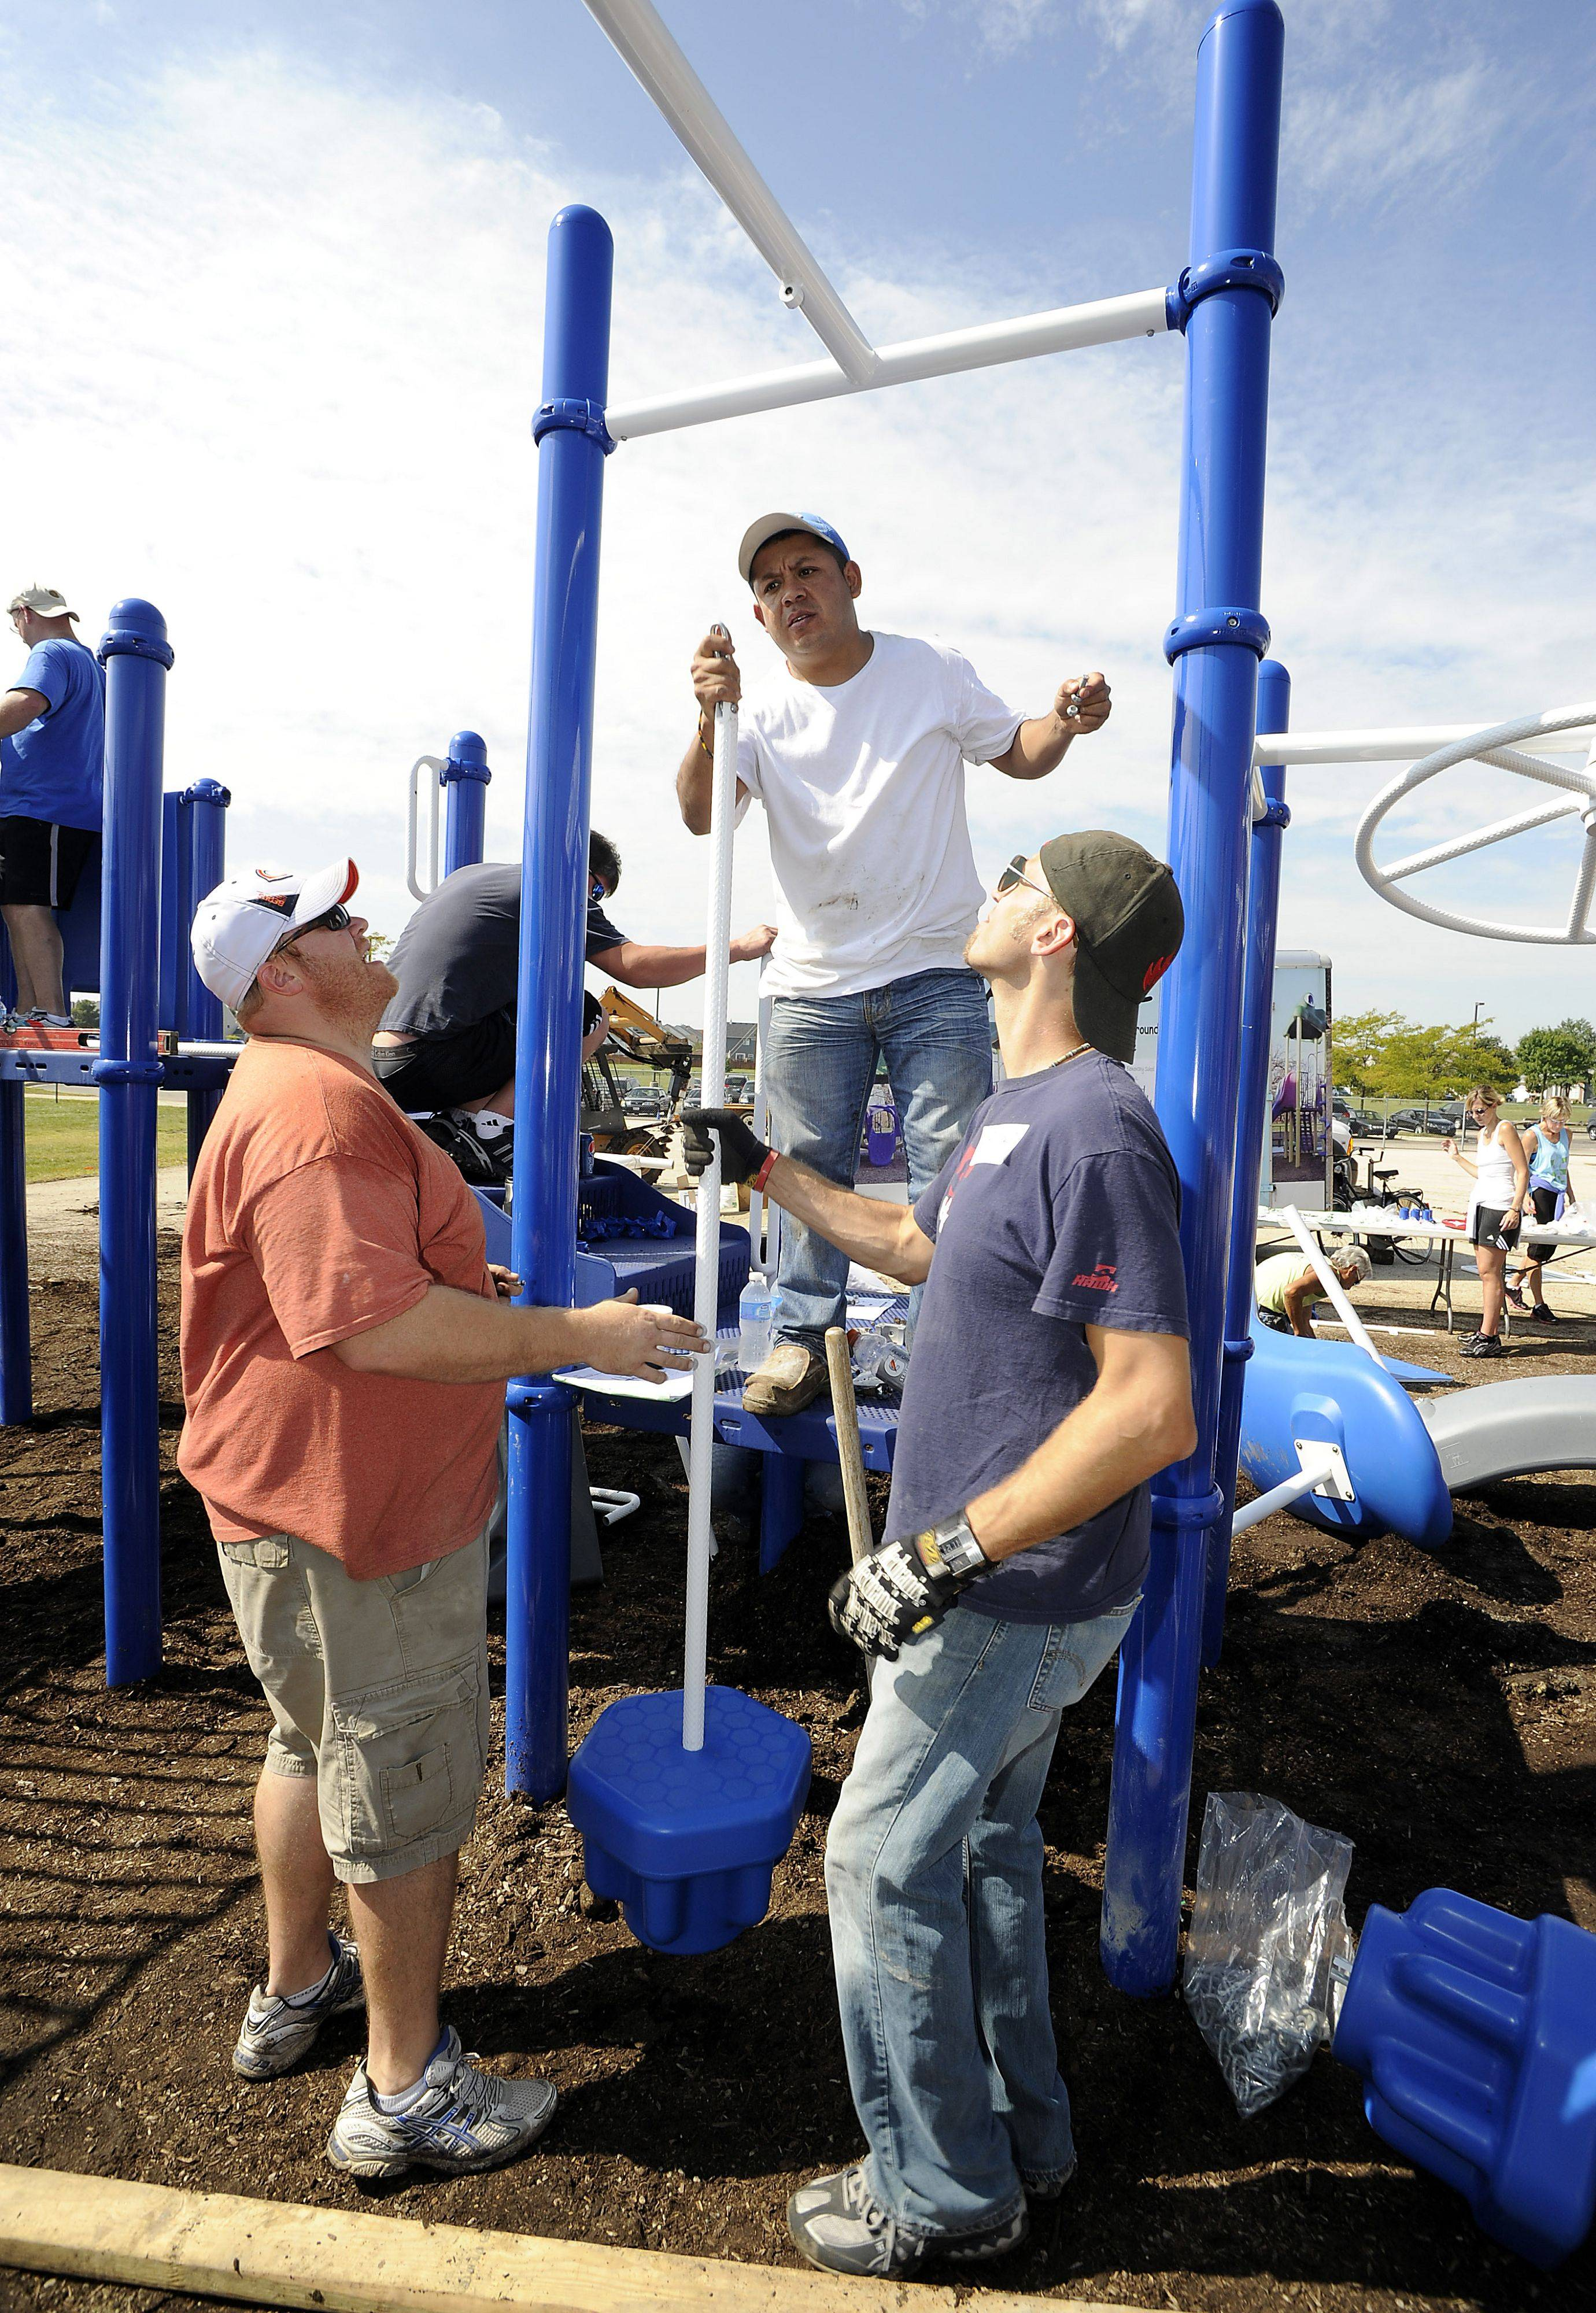 Parents and workers like Jeremy Jahnke, Humberto Lopez and Bob Skwarek work together to assembly a new playground Saturday at the Nature Ridge Elementary School in Bartlett.